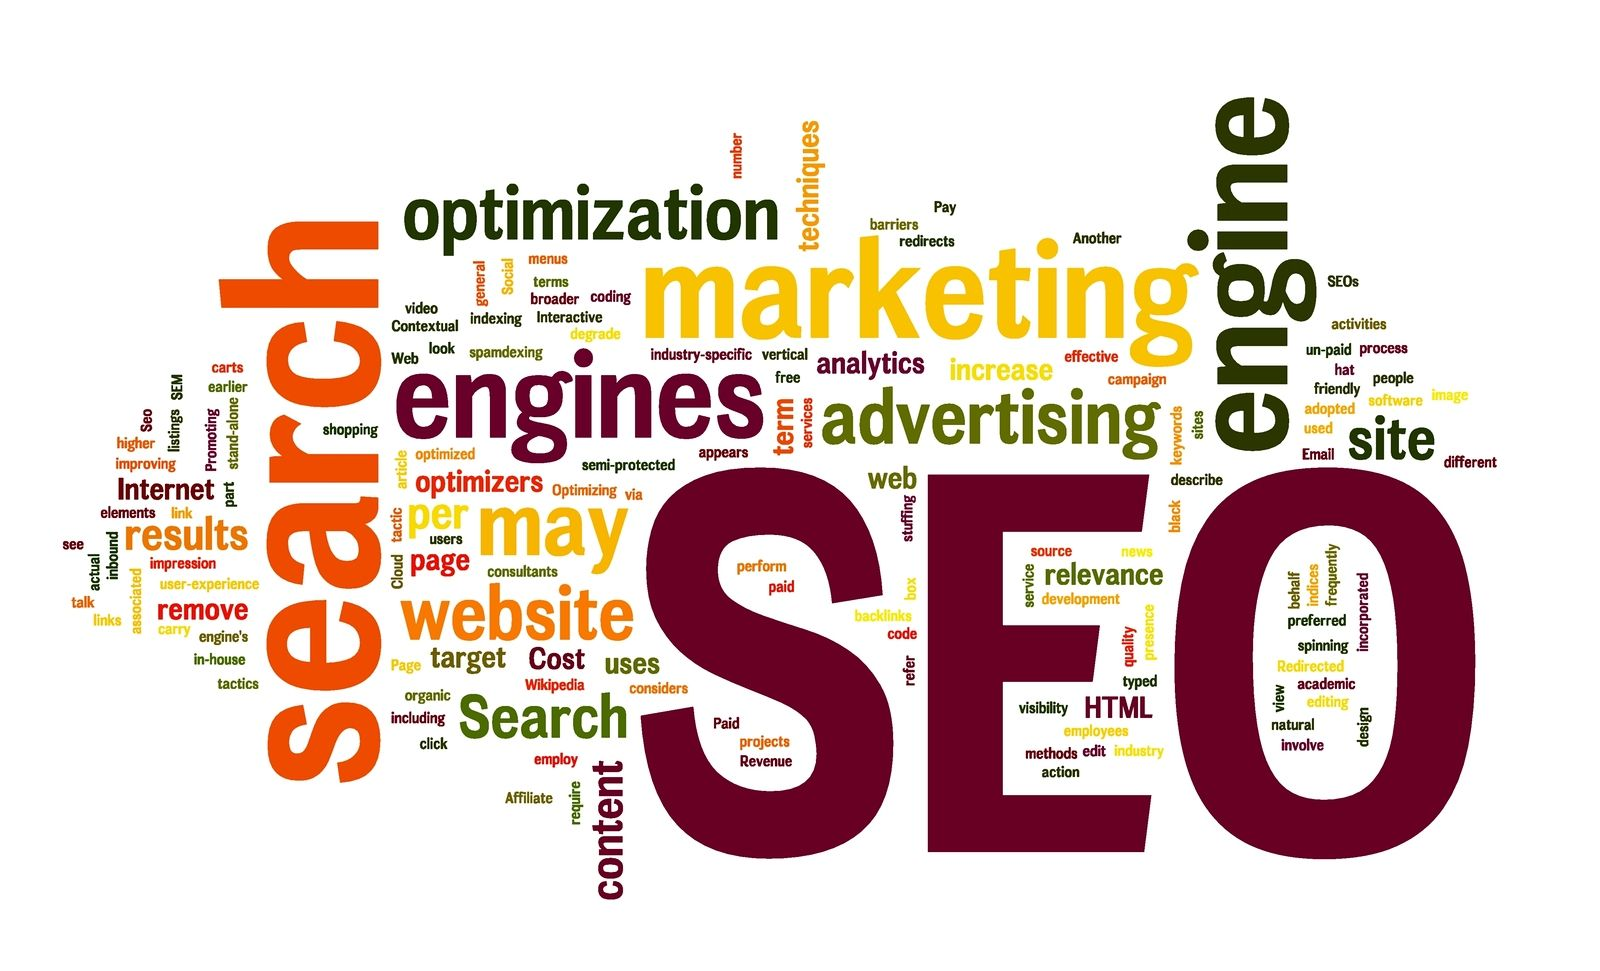 Your Most Common SEO Questions Answered - Internet Marketing Agency http://rplg.co/49d880d0